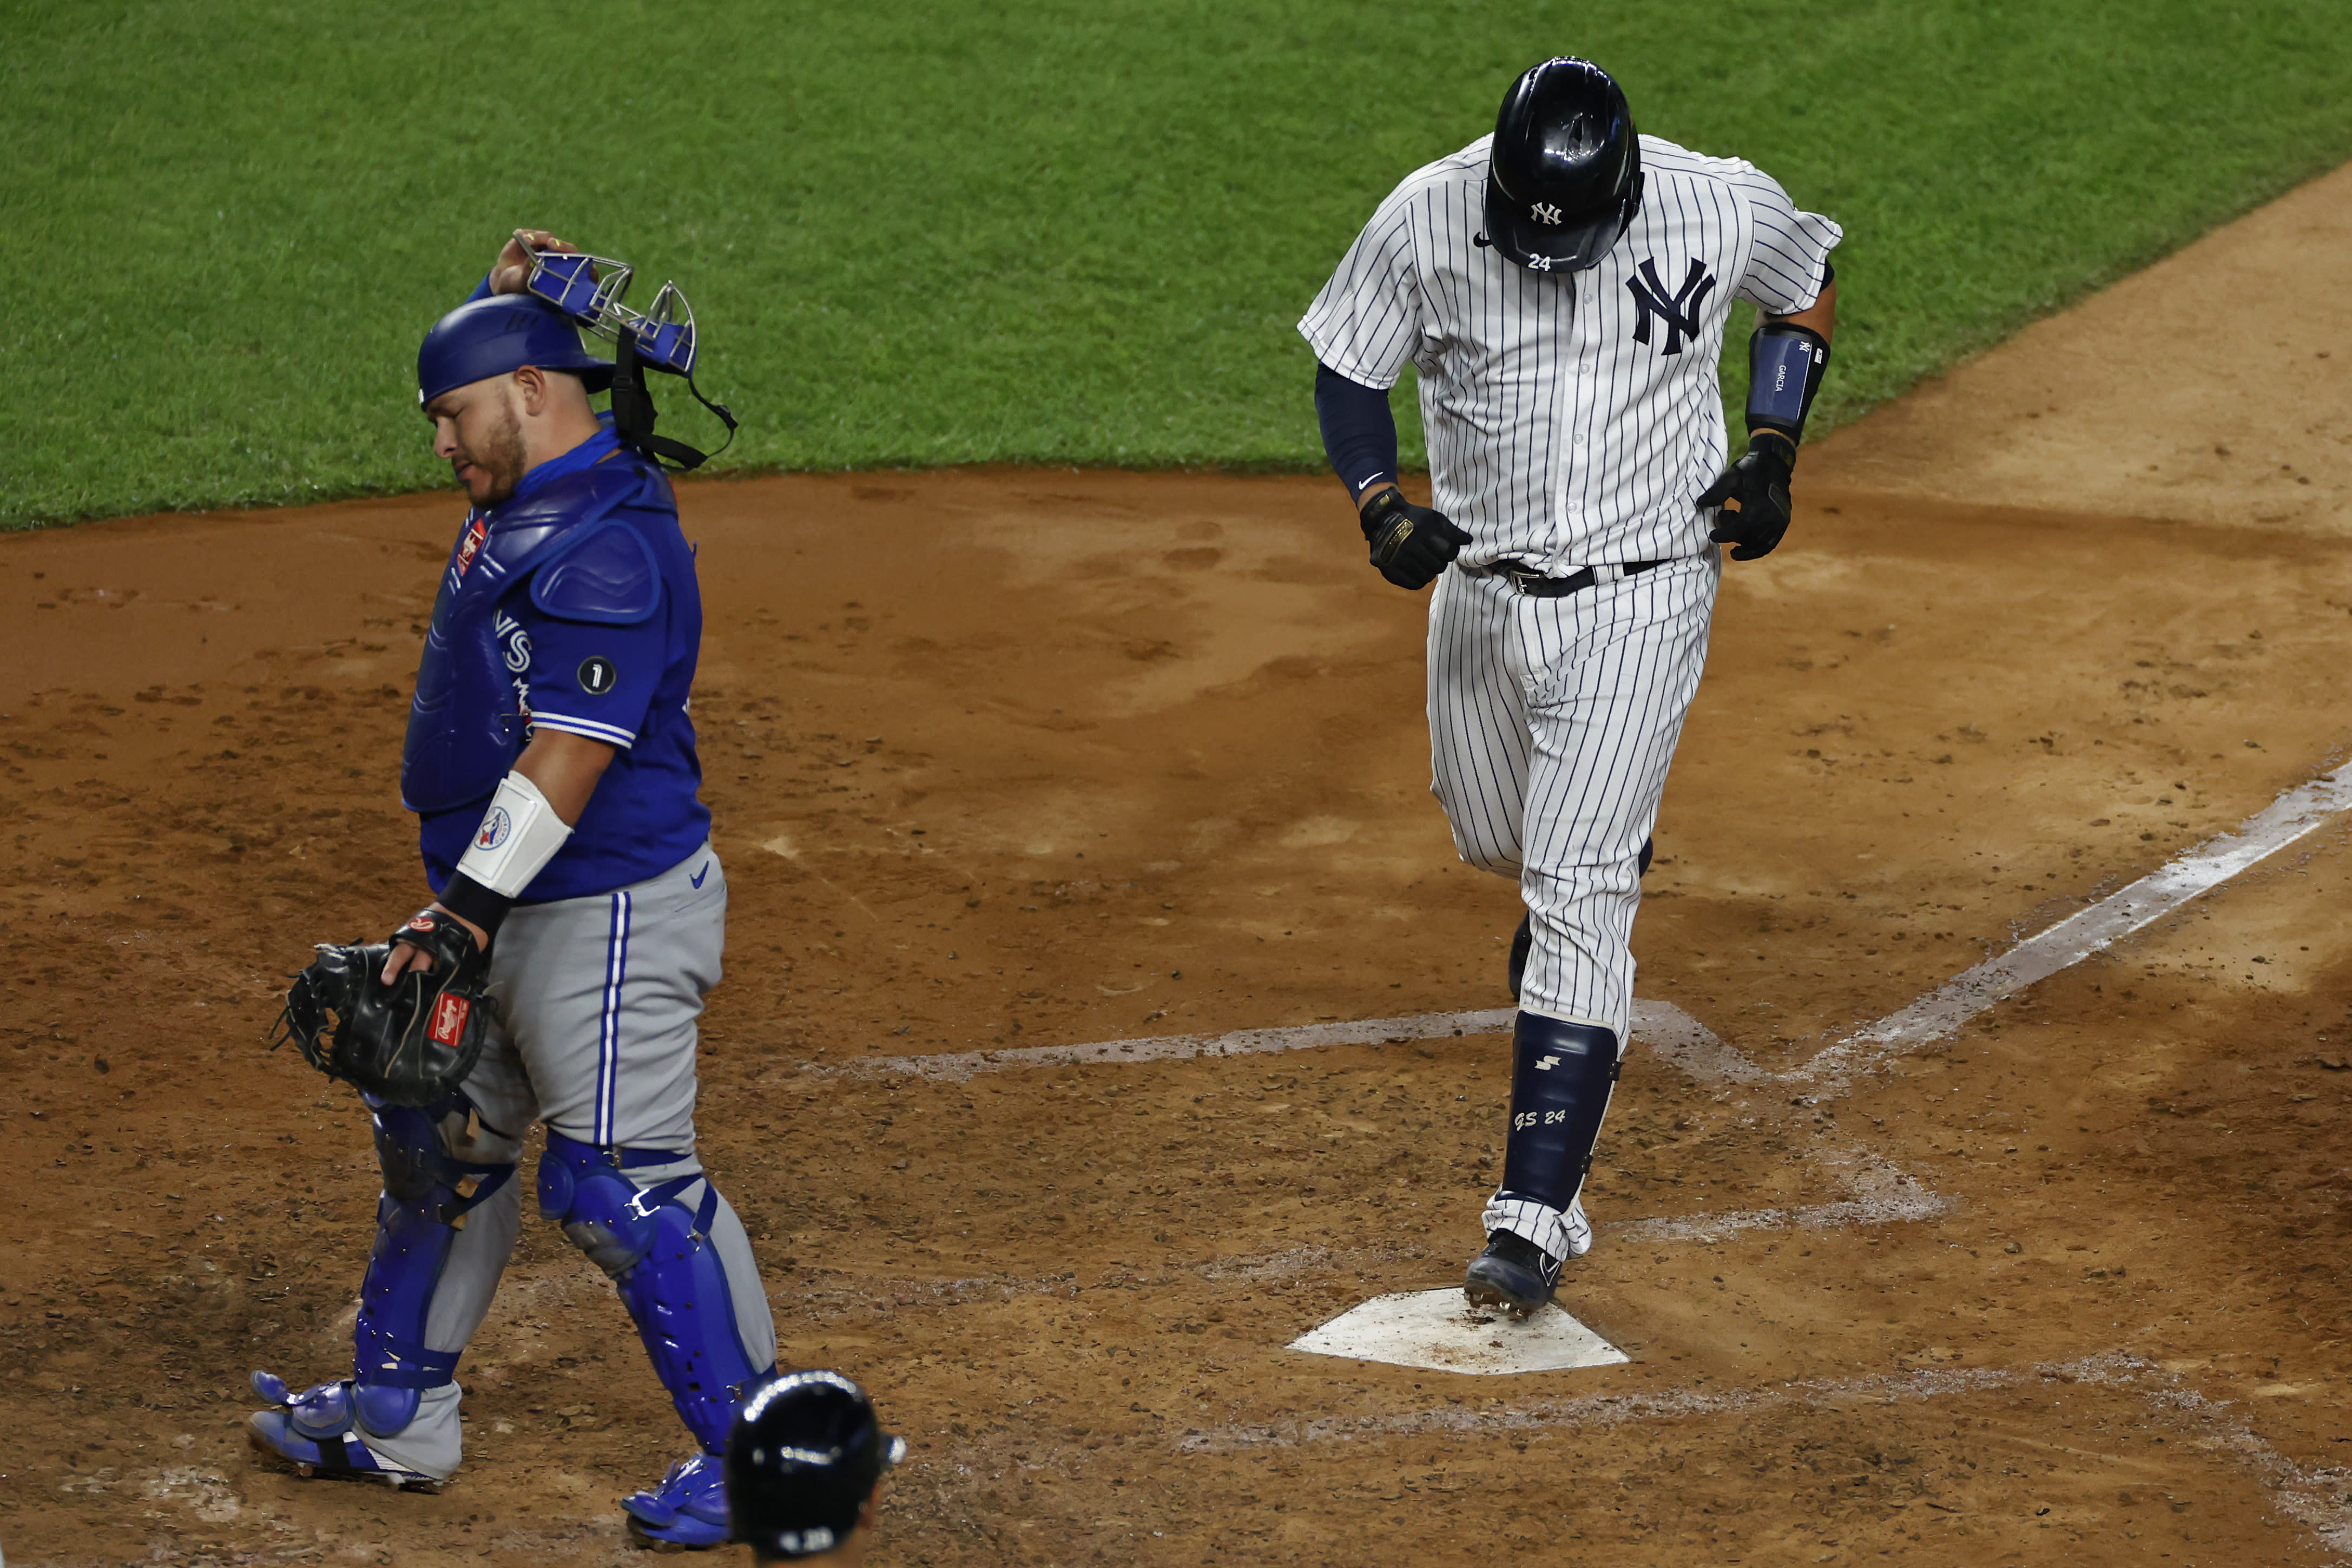 Toronto Blue Jays catcher Alejandro Kirk turns away as New York Yankees' Gary Sanchez steps on home plate after hitting a three-run home run during the fourth inning of a baseball game on Tuesday, Sept. 15, 2020, in New York. (AP Photo/Adam Hunger)